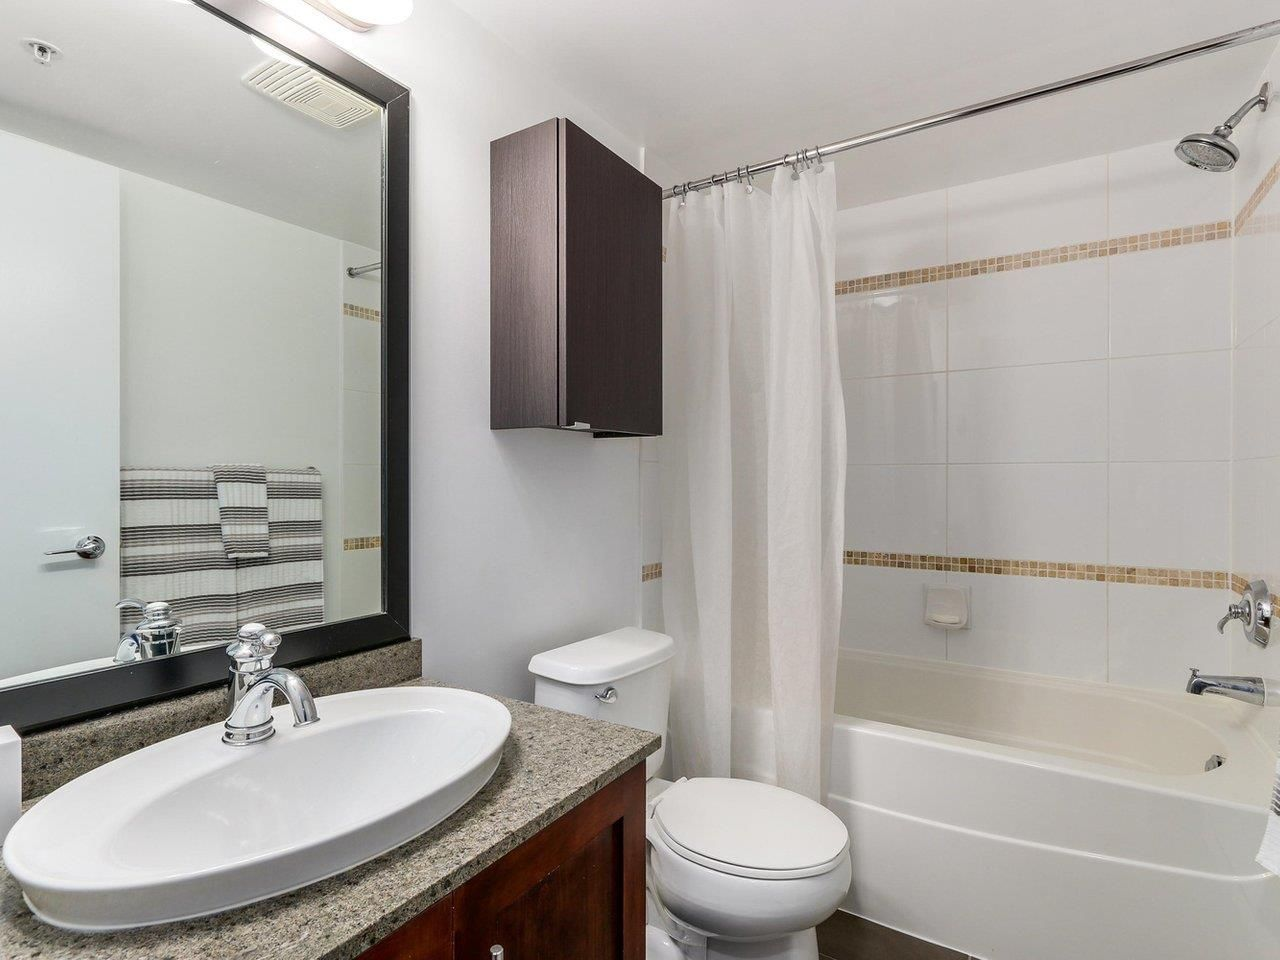 Photo 14: Photos: 119 672 W 6TH AVENUE in Vancouver: Fairview VW Townhouse for sale (Vancouver West)  : MLS®# R2401186